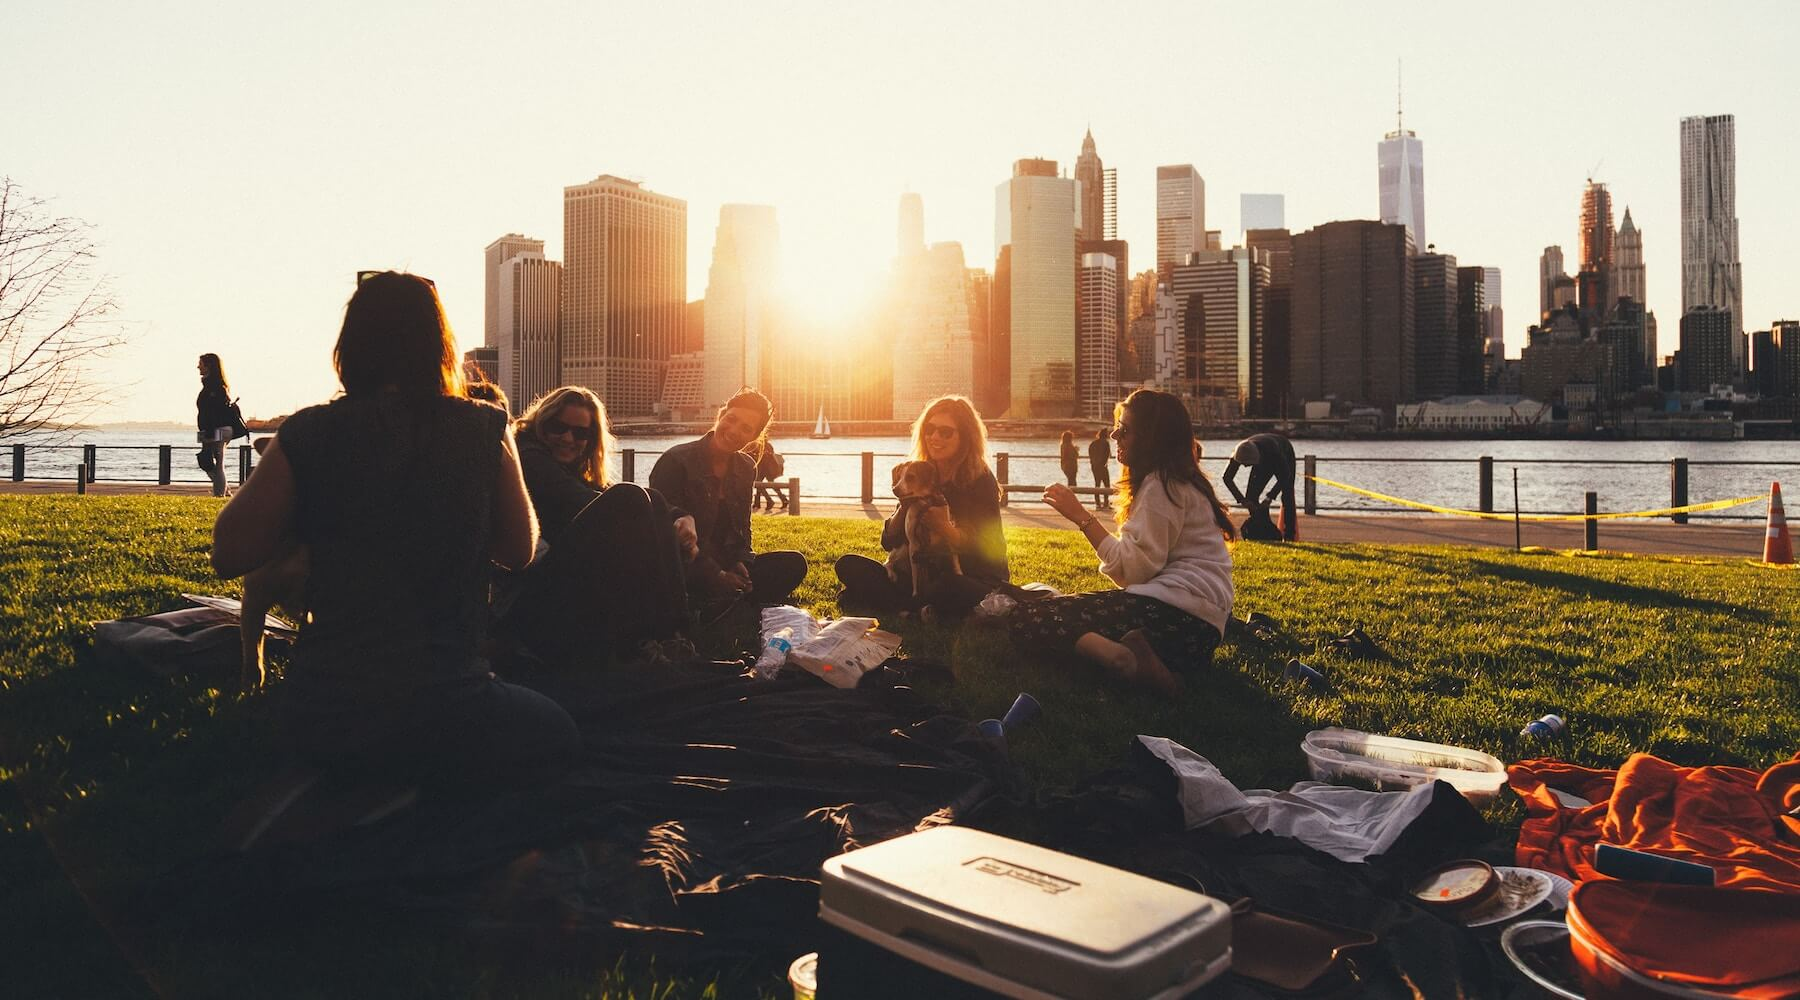 Feeling Lonely as an Entrepreneur? Try These 4 Sources of Community